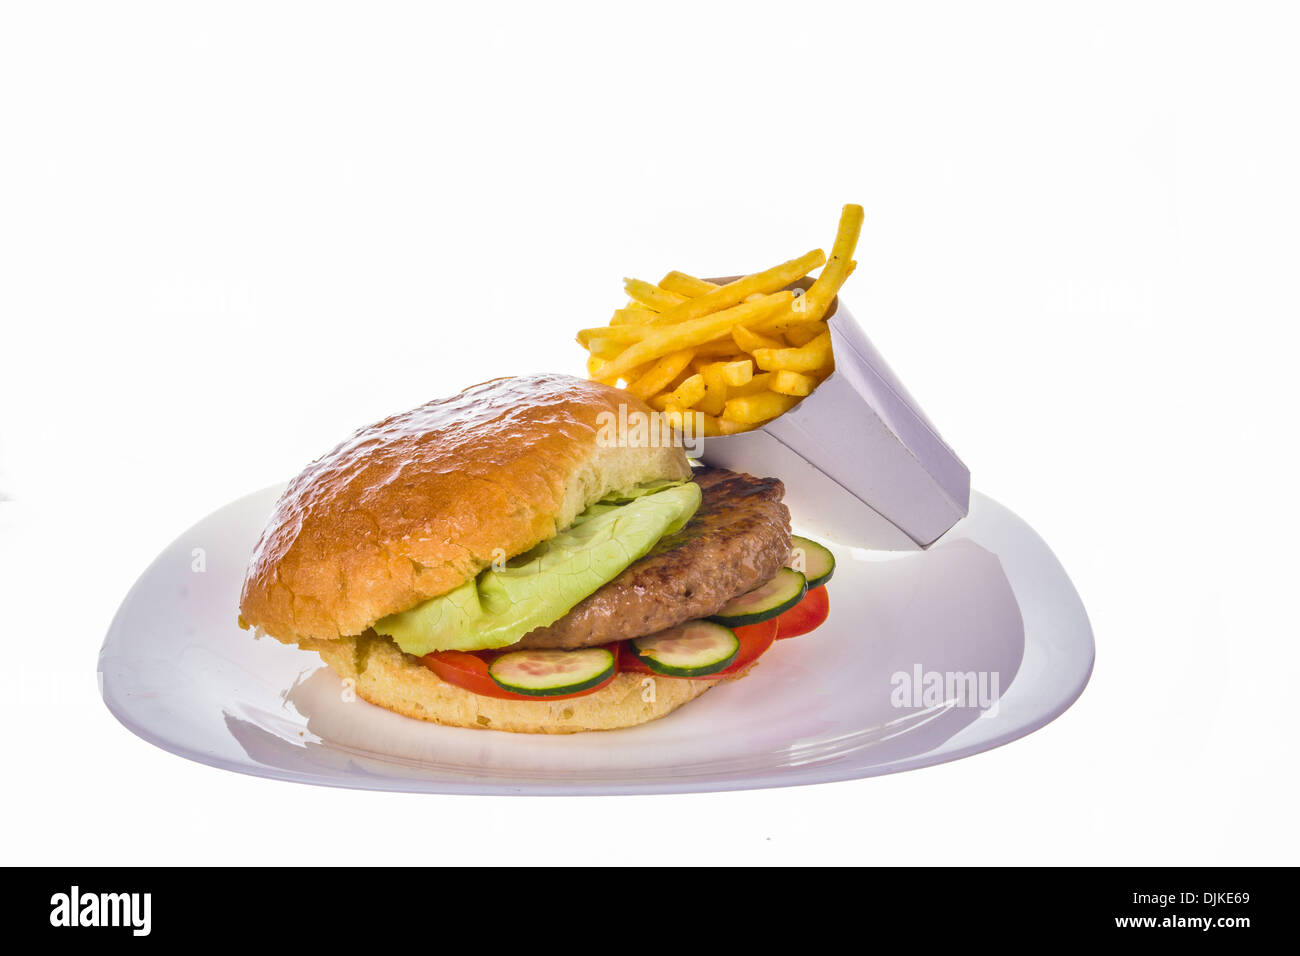 hamburger with salad and french fries on white plate - Stock Image